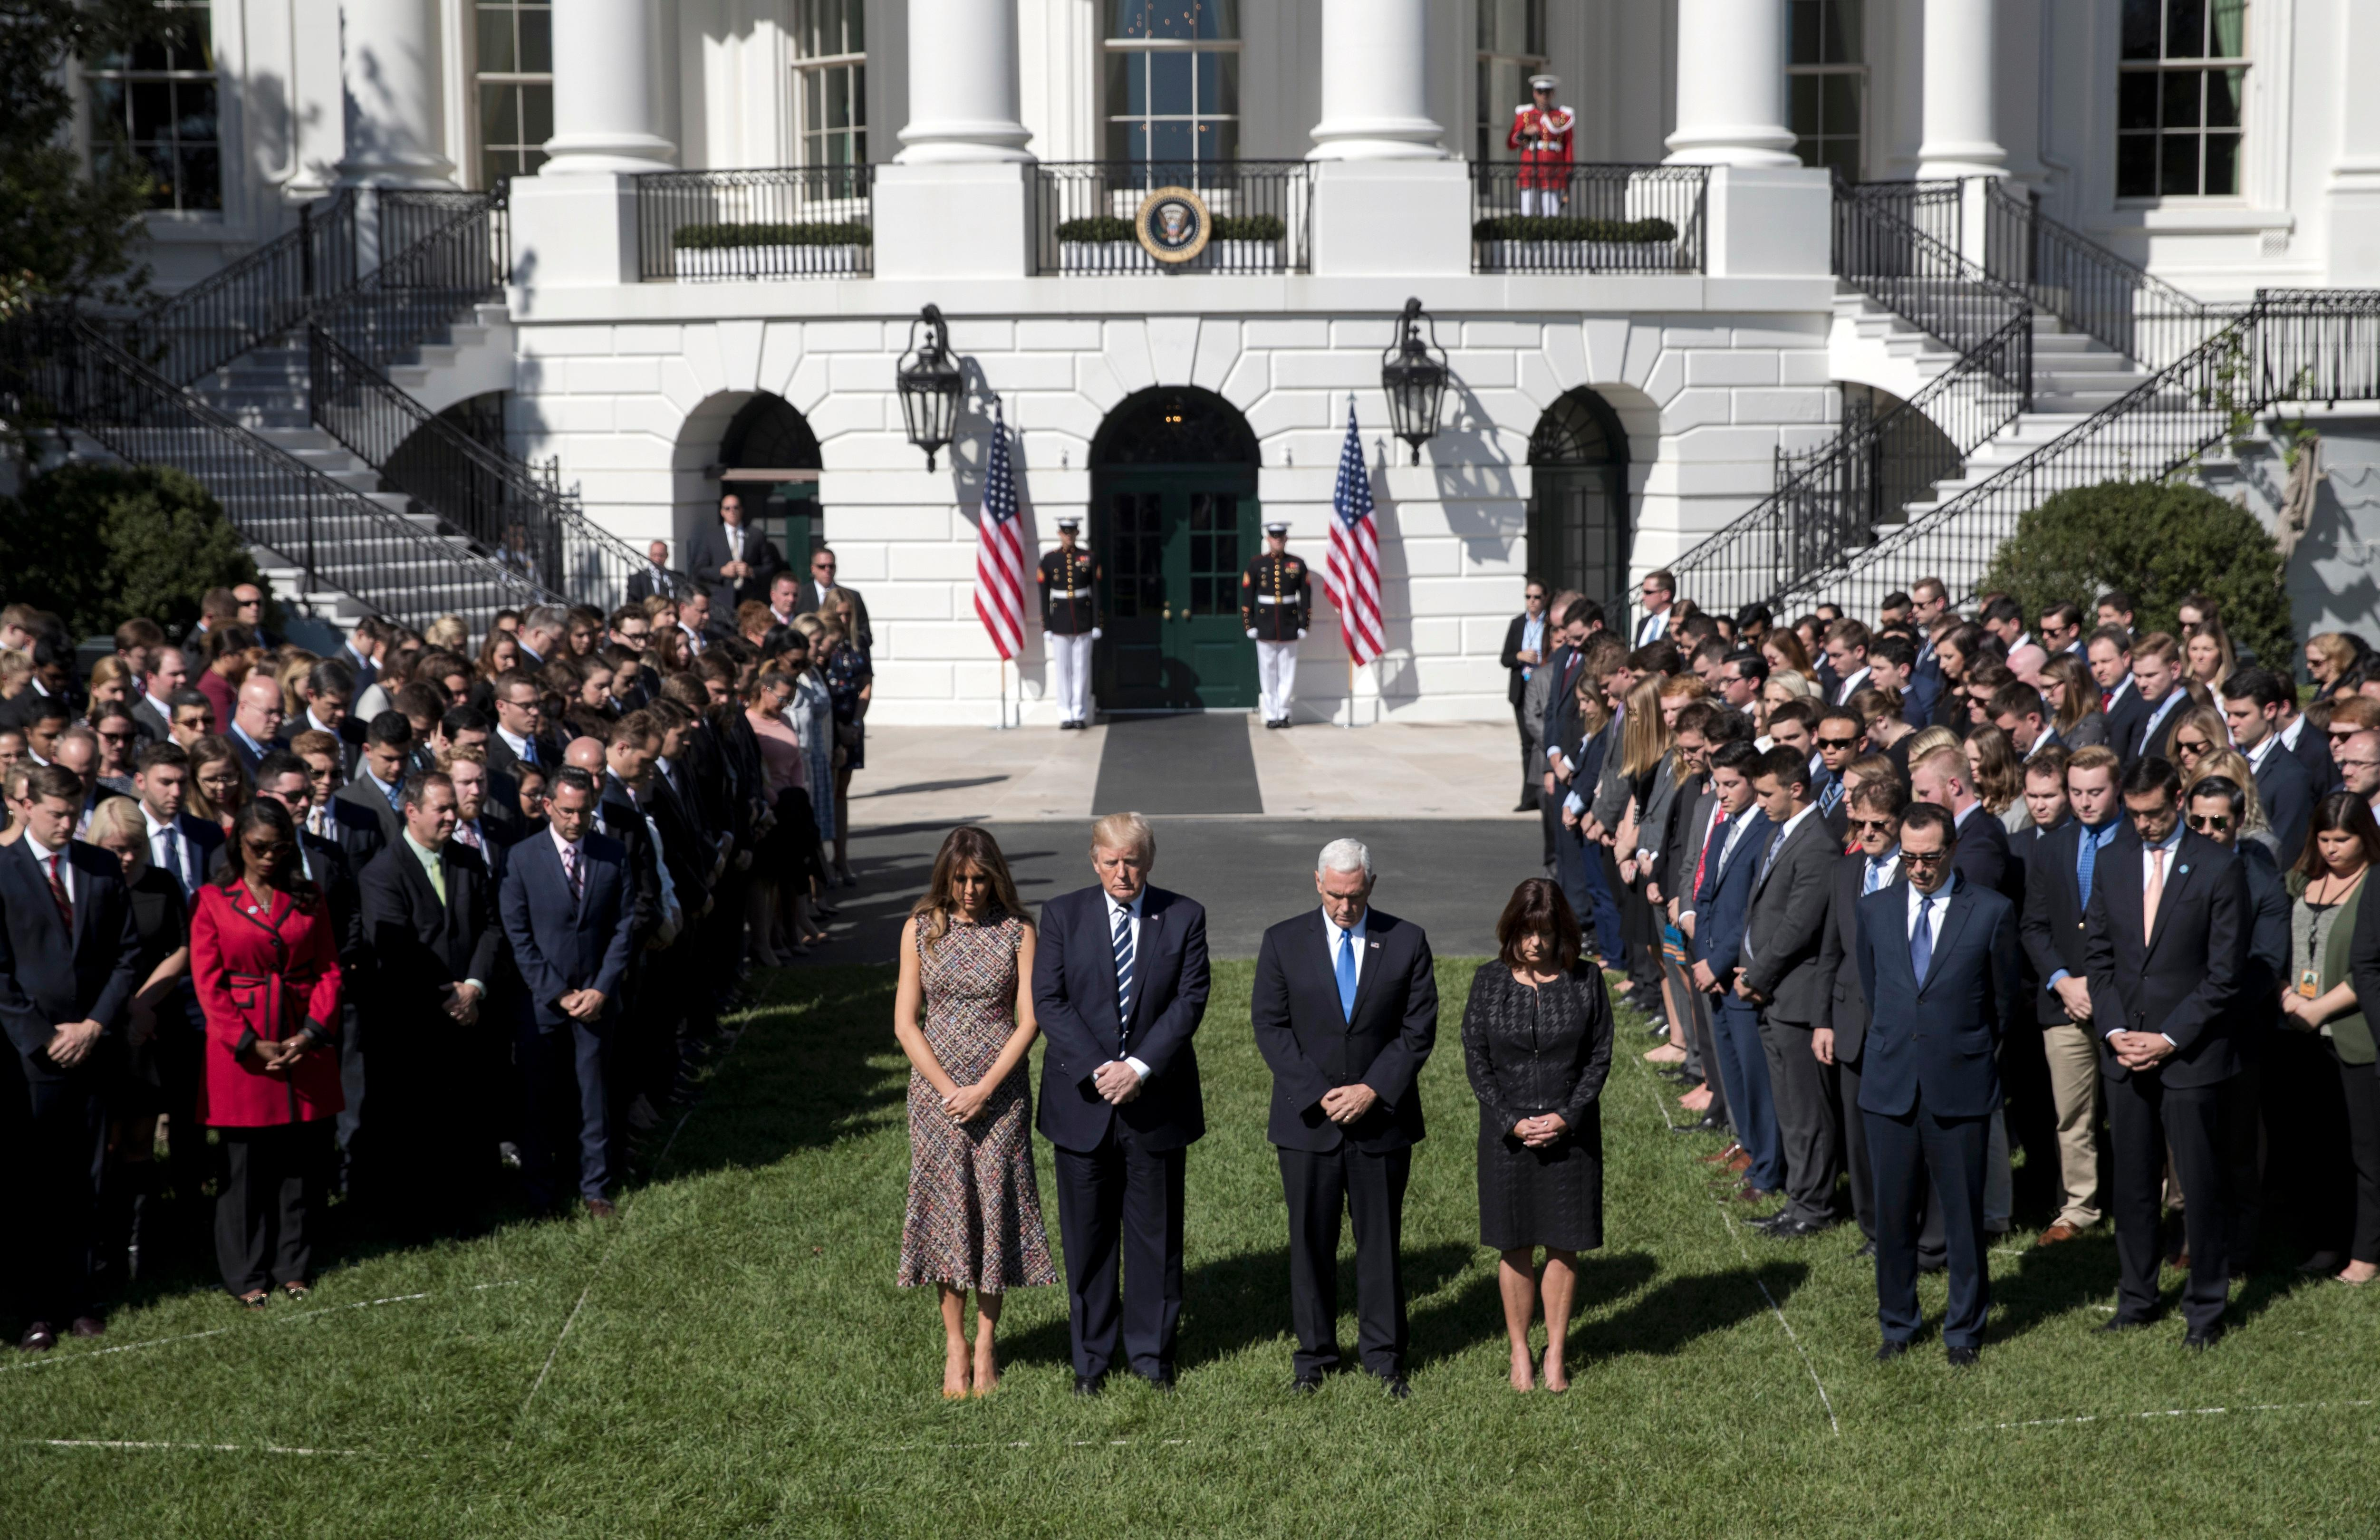 President Donald Trump and first lady Melania Trump stand with Vice President Mike Pence, his wife Karen, and members of the White House staff during a moment of silence to remember the victims of the mass shooting in Las Vegas, on the South Lawn of the White House in Washington, Monday, Oct. 2, 2017. (AP Photo/Carolyn Kaster)